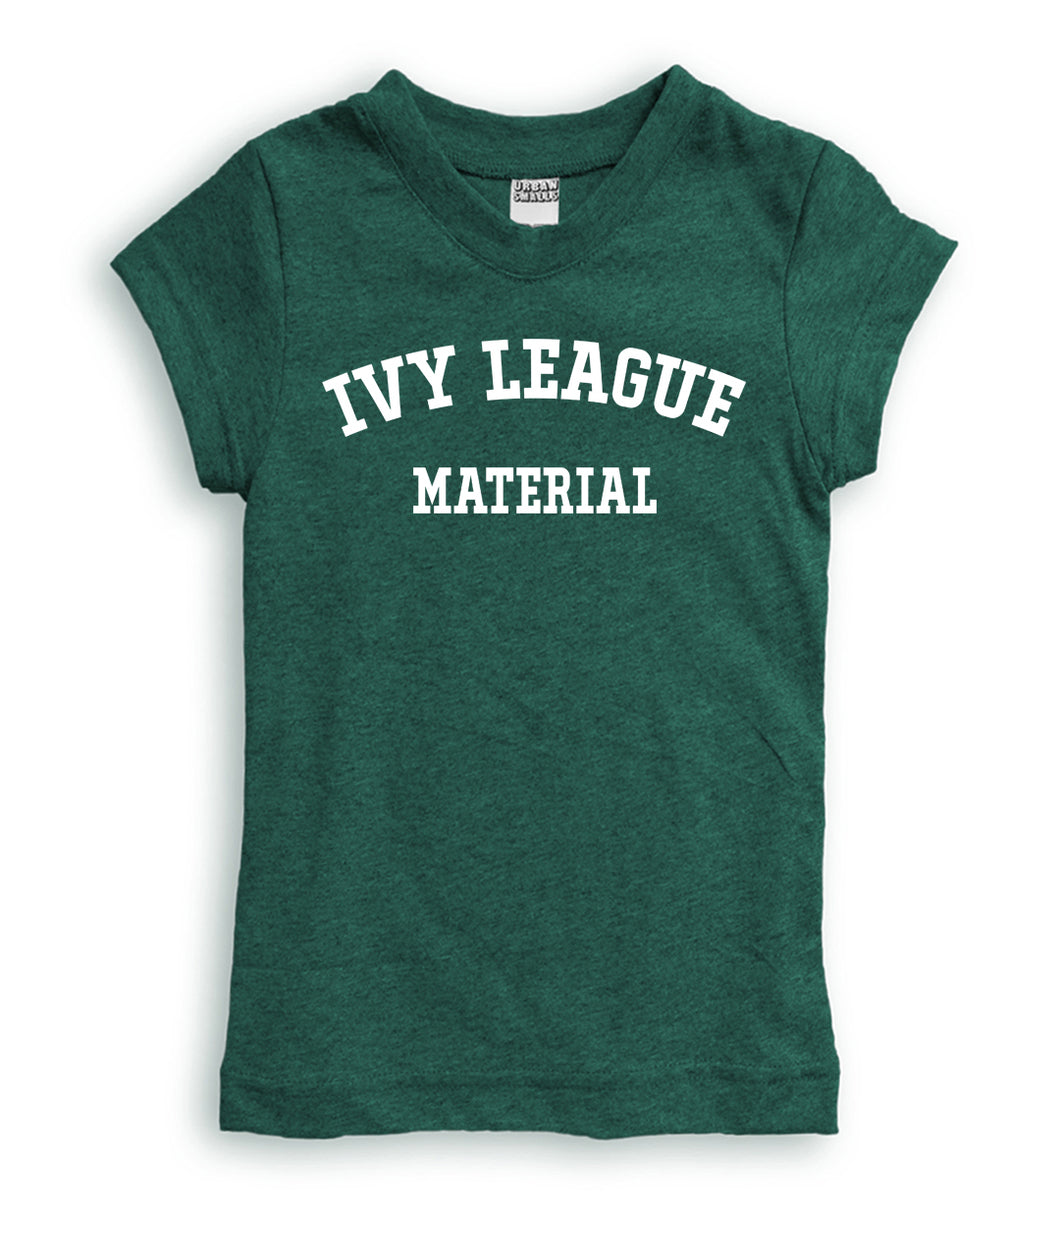 'Ivy League Material' Fitted Tee